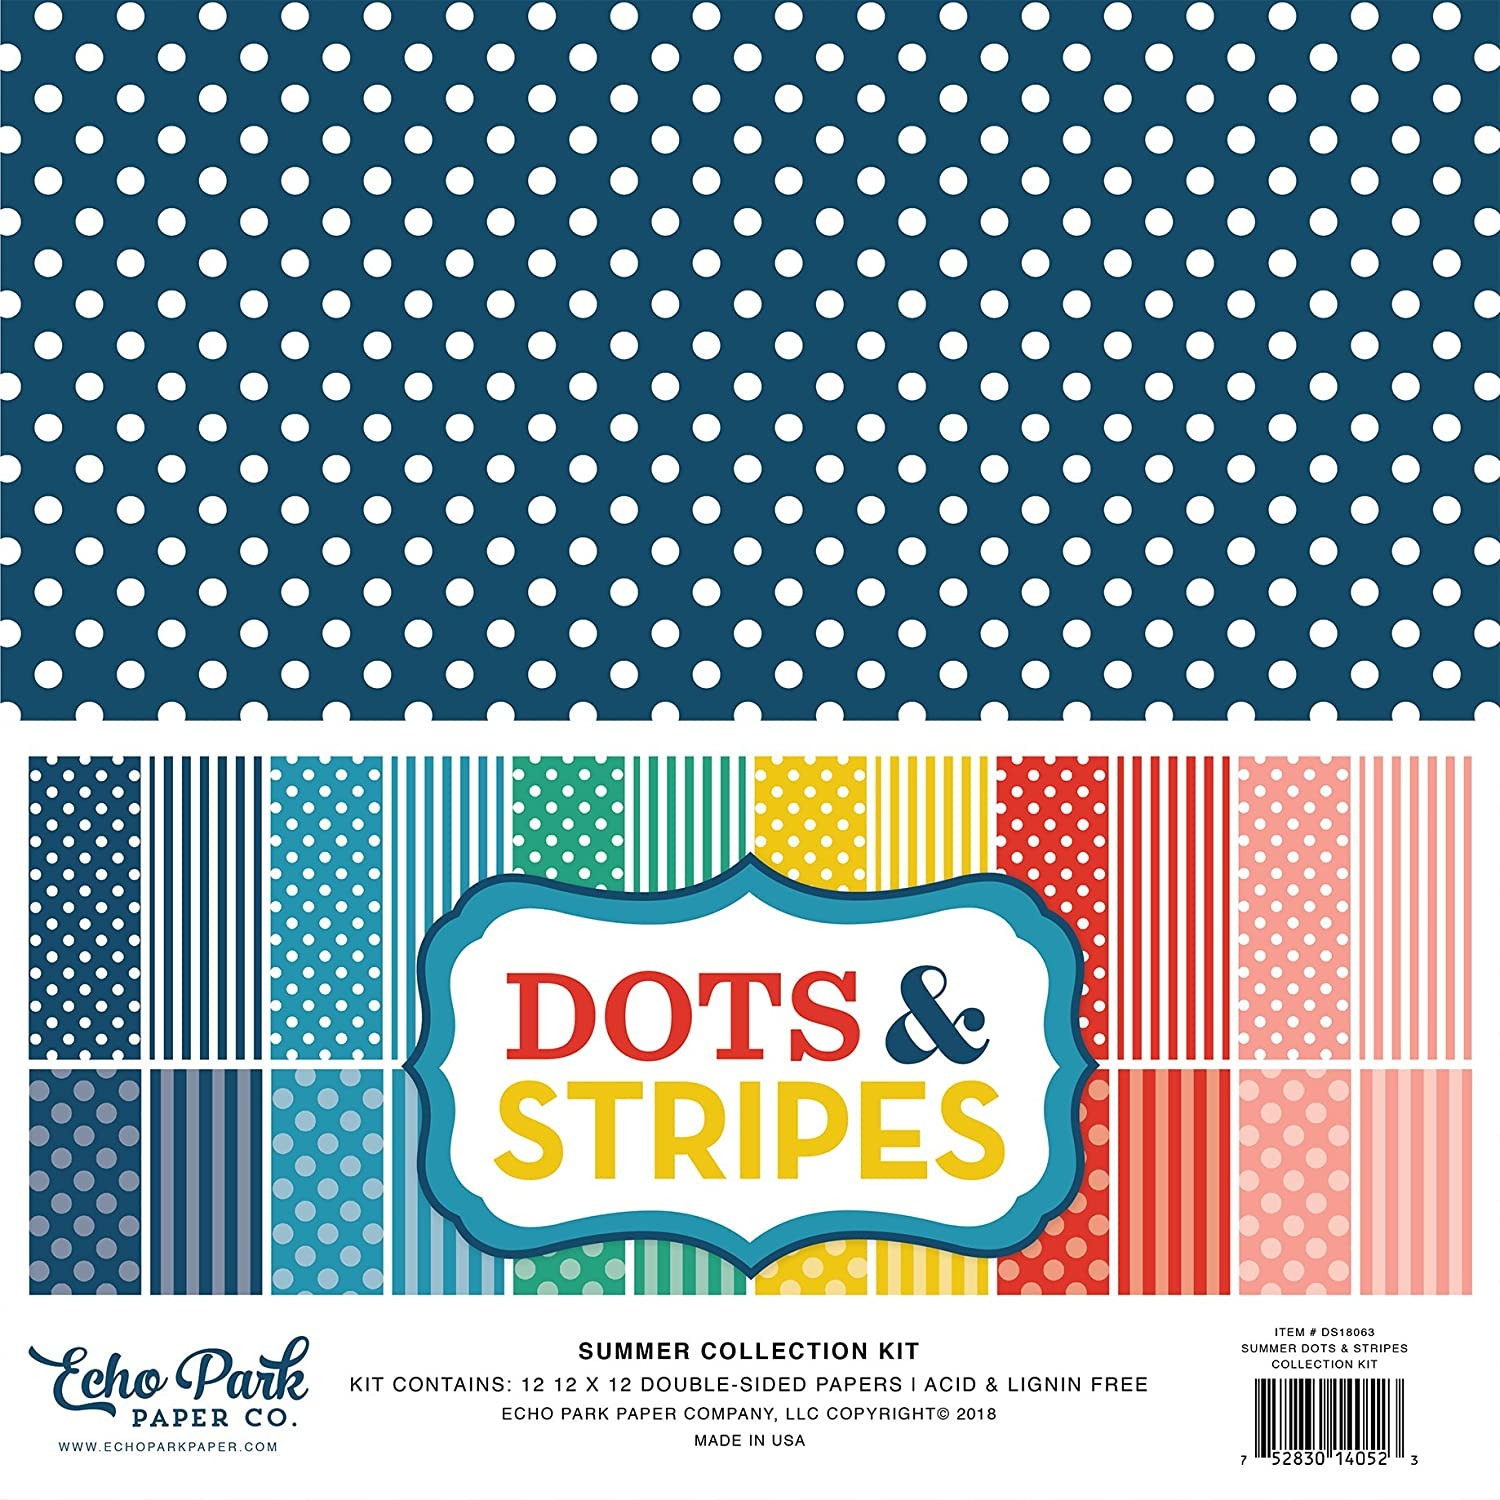 Echo Park Paper Company Summer Dots /& Stripes Collection Kit